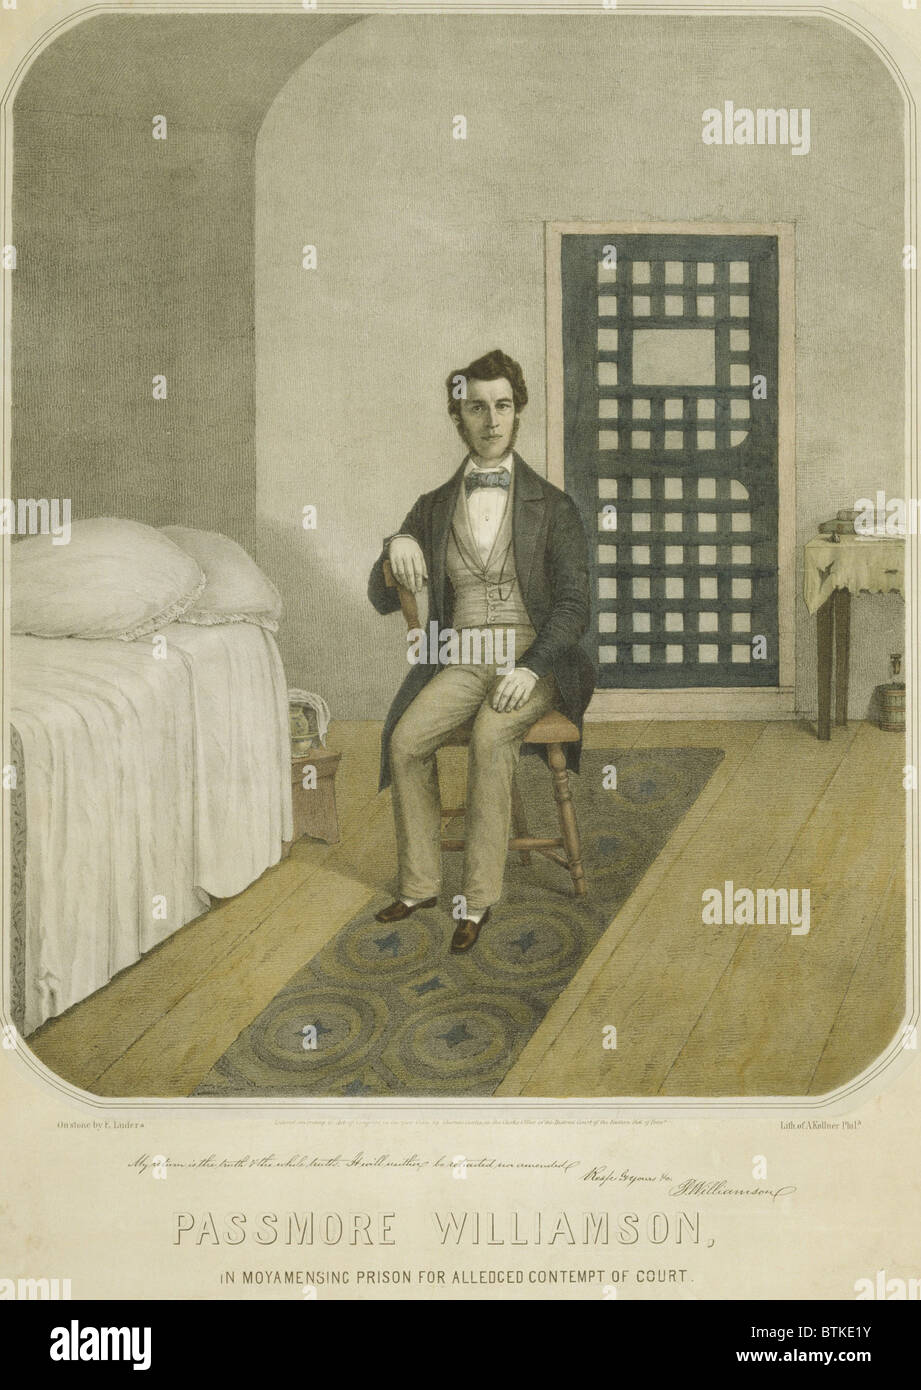 Abolitionist Passmore Williamson, in his Prison cell for violating the Fugitive Slave Law of 1850. With others Williamson - Stock Image